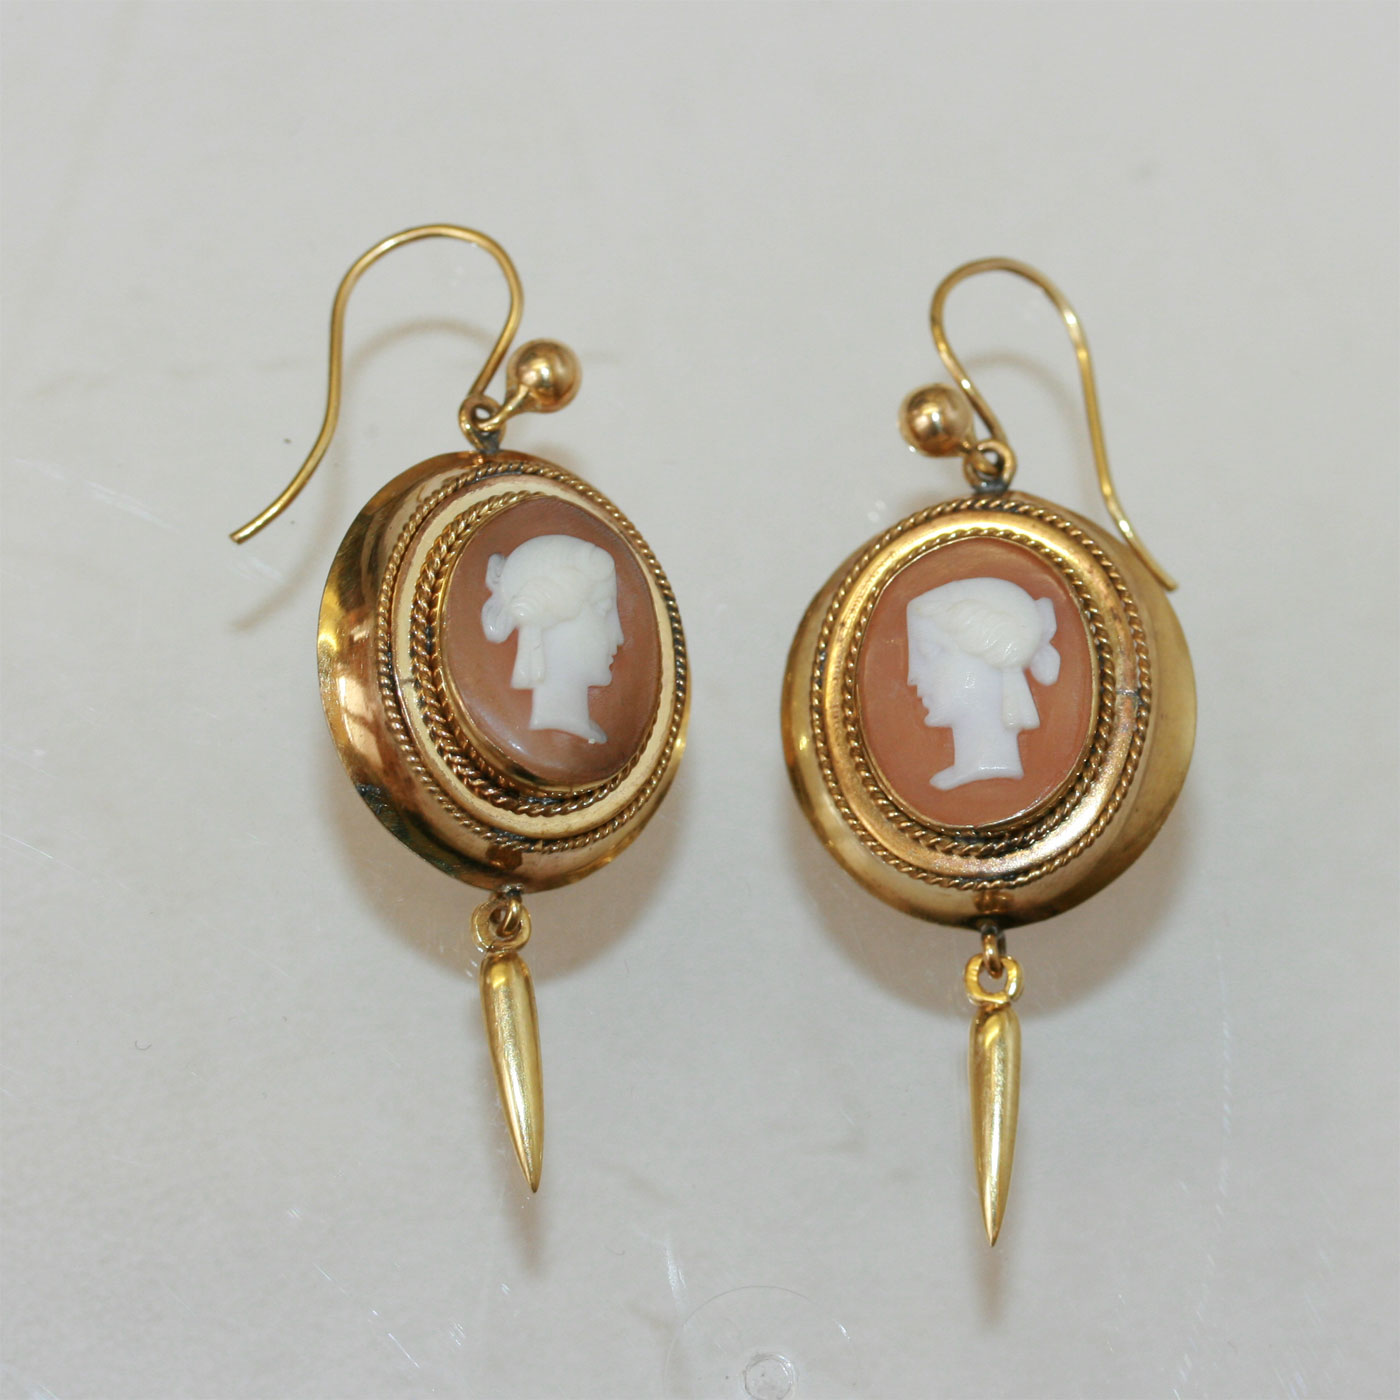 Buy A Harp >> Buy Antique Victorian cameo earrings. Sold Items, Sold ...